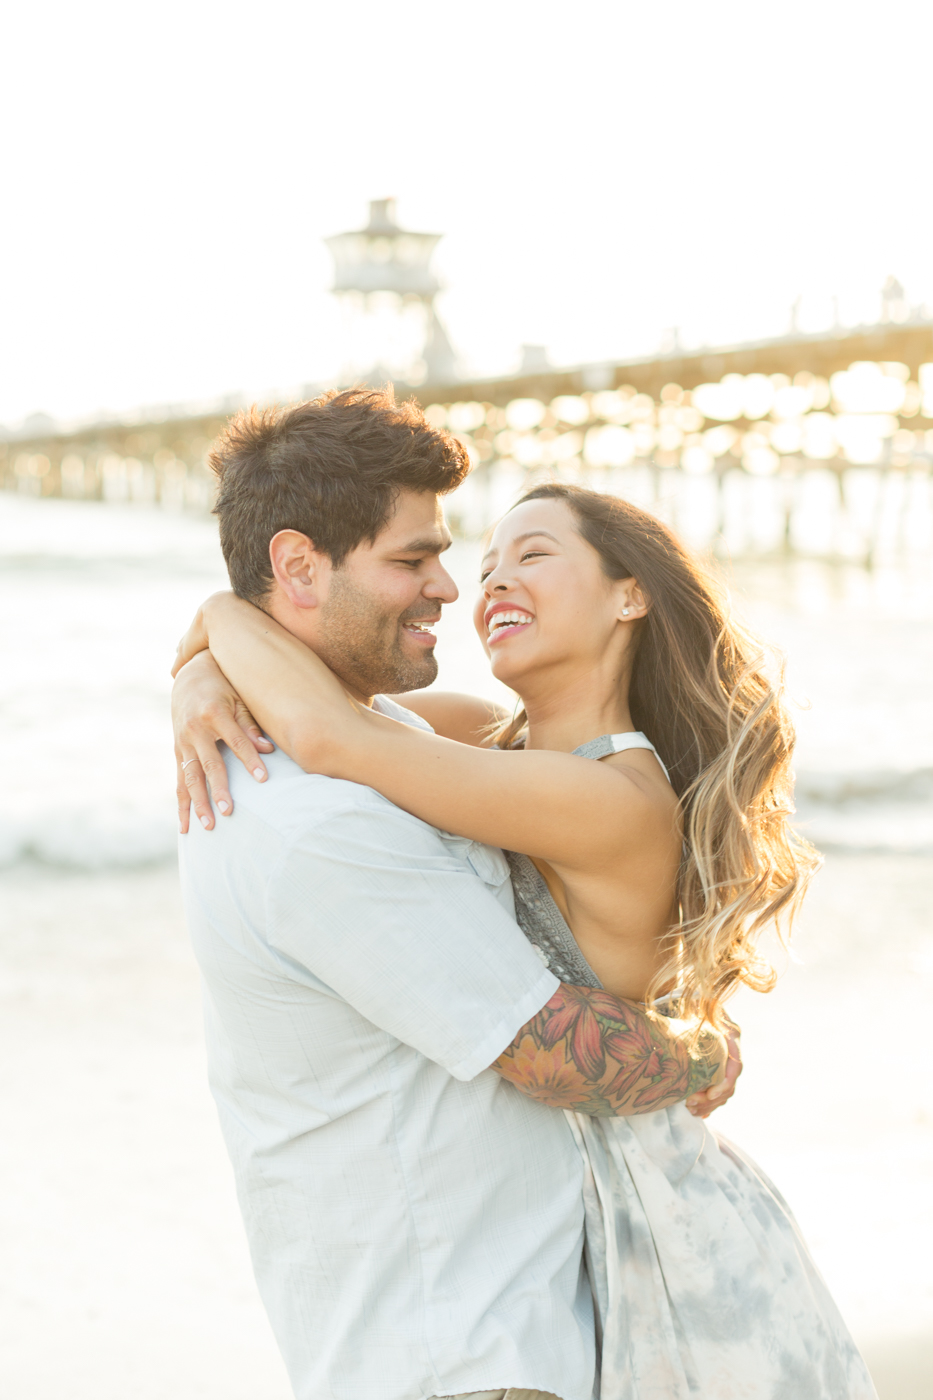 Not your average date night ideas. They aren't just a list of things you could do but theyare prompts to help you stay connected with one another and stay present in your lives. By San Clemente Wedding Photographer Christa Norman